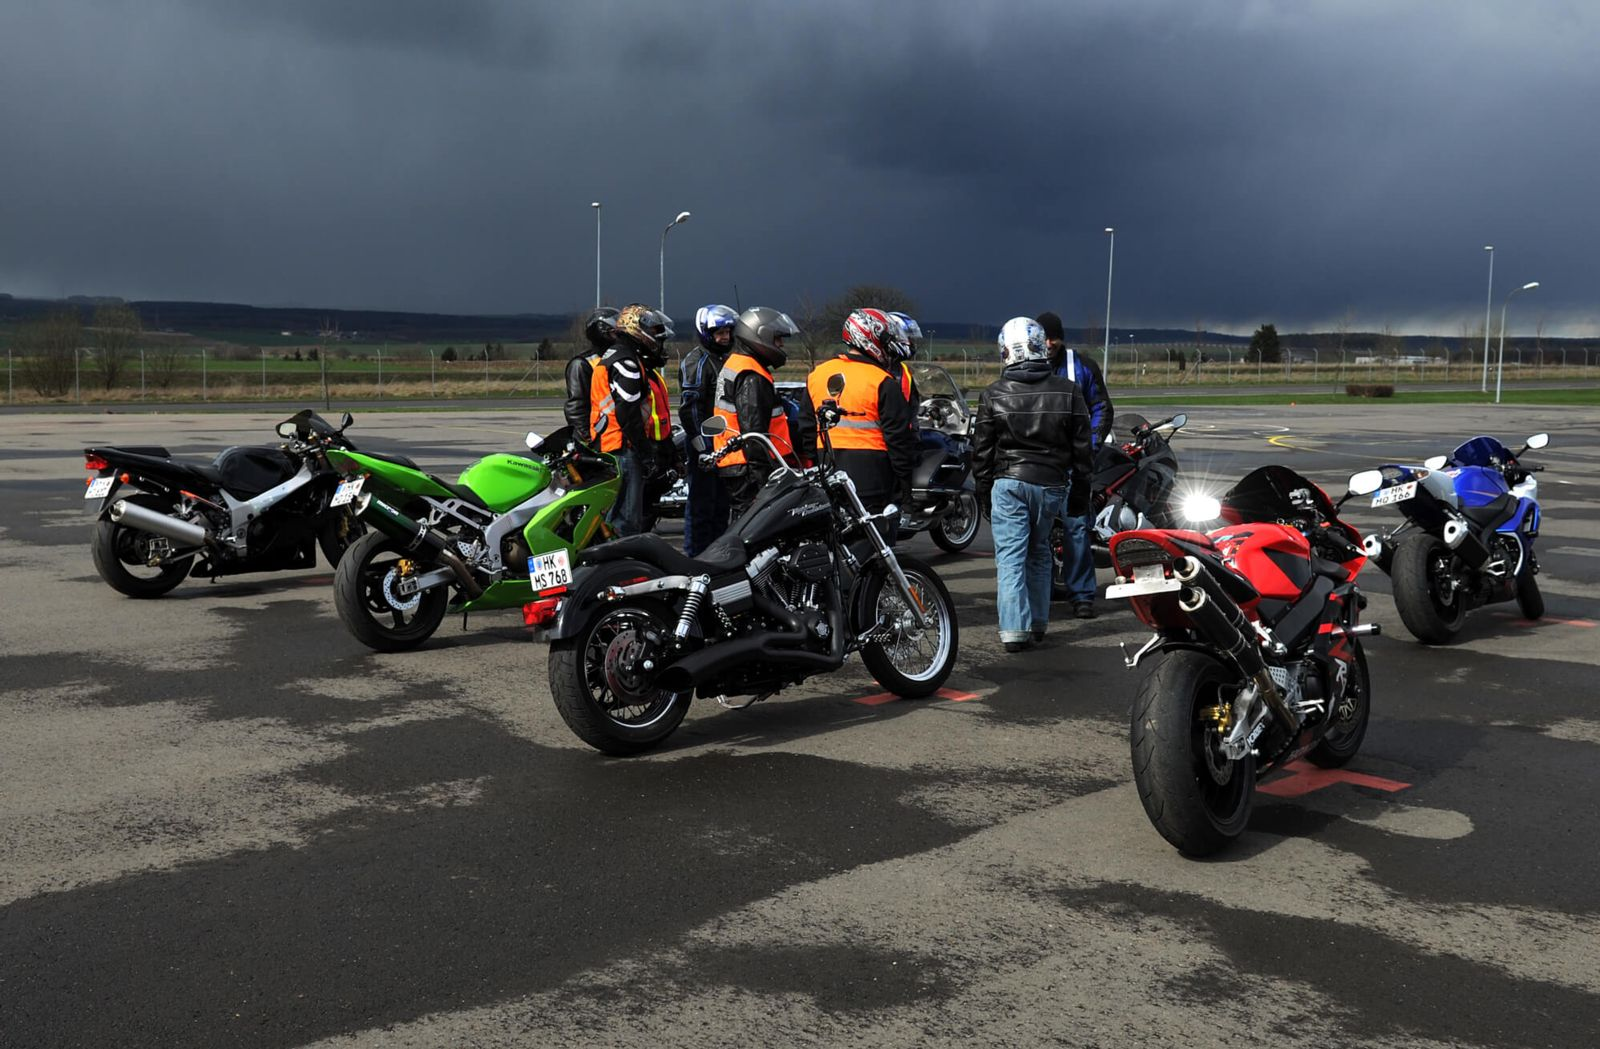 Riders practicing and learning about how to safely ride motorcycles in rain